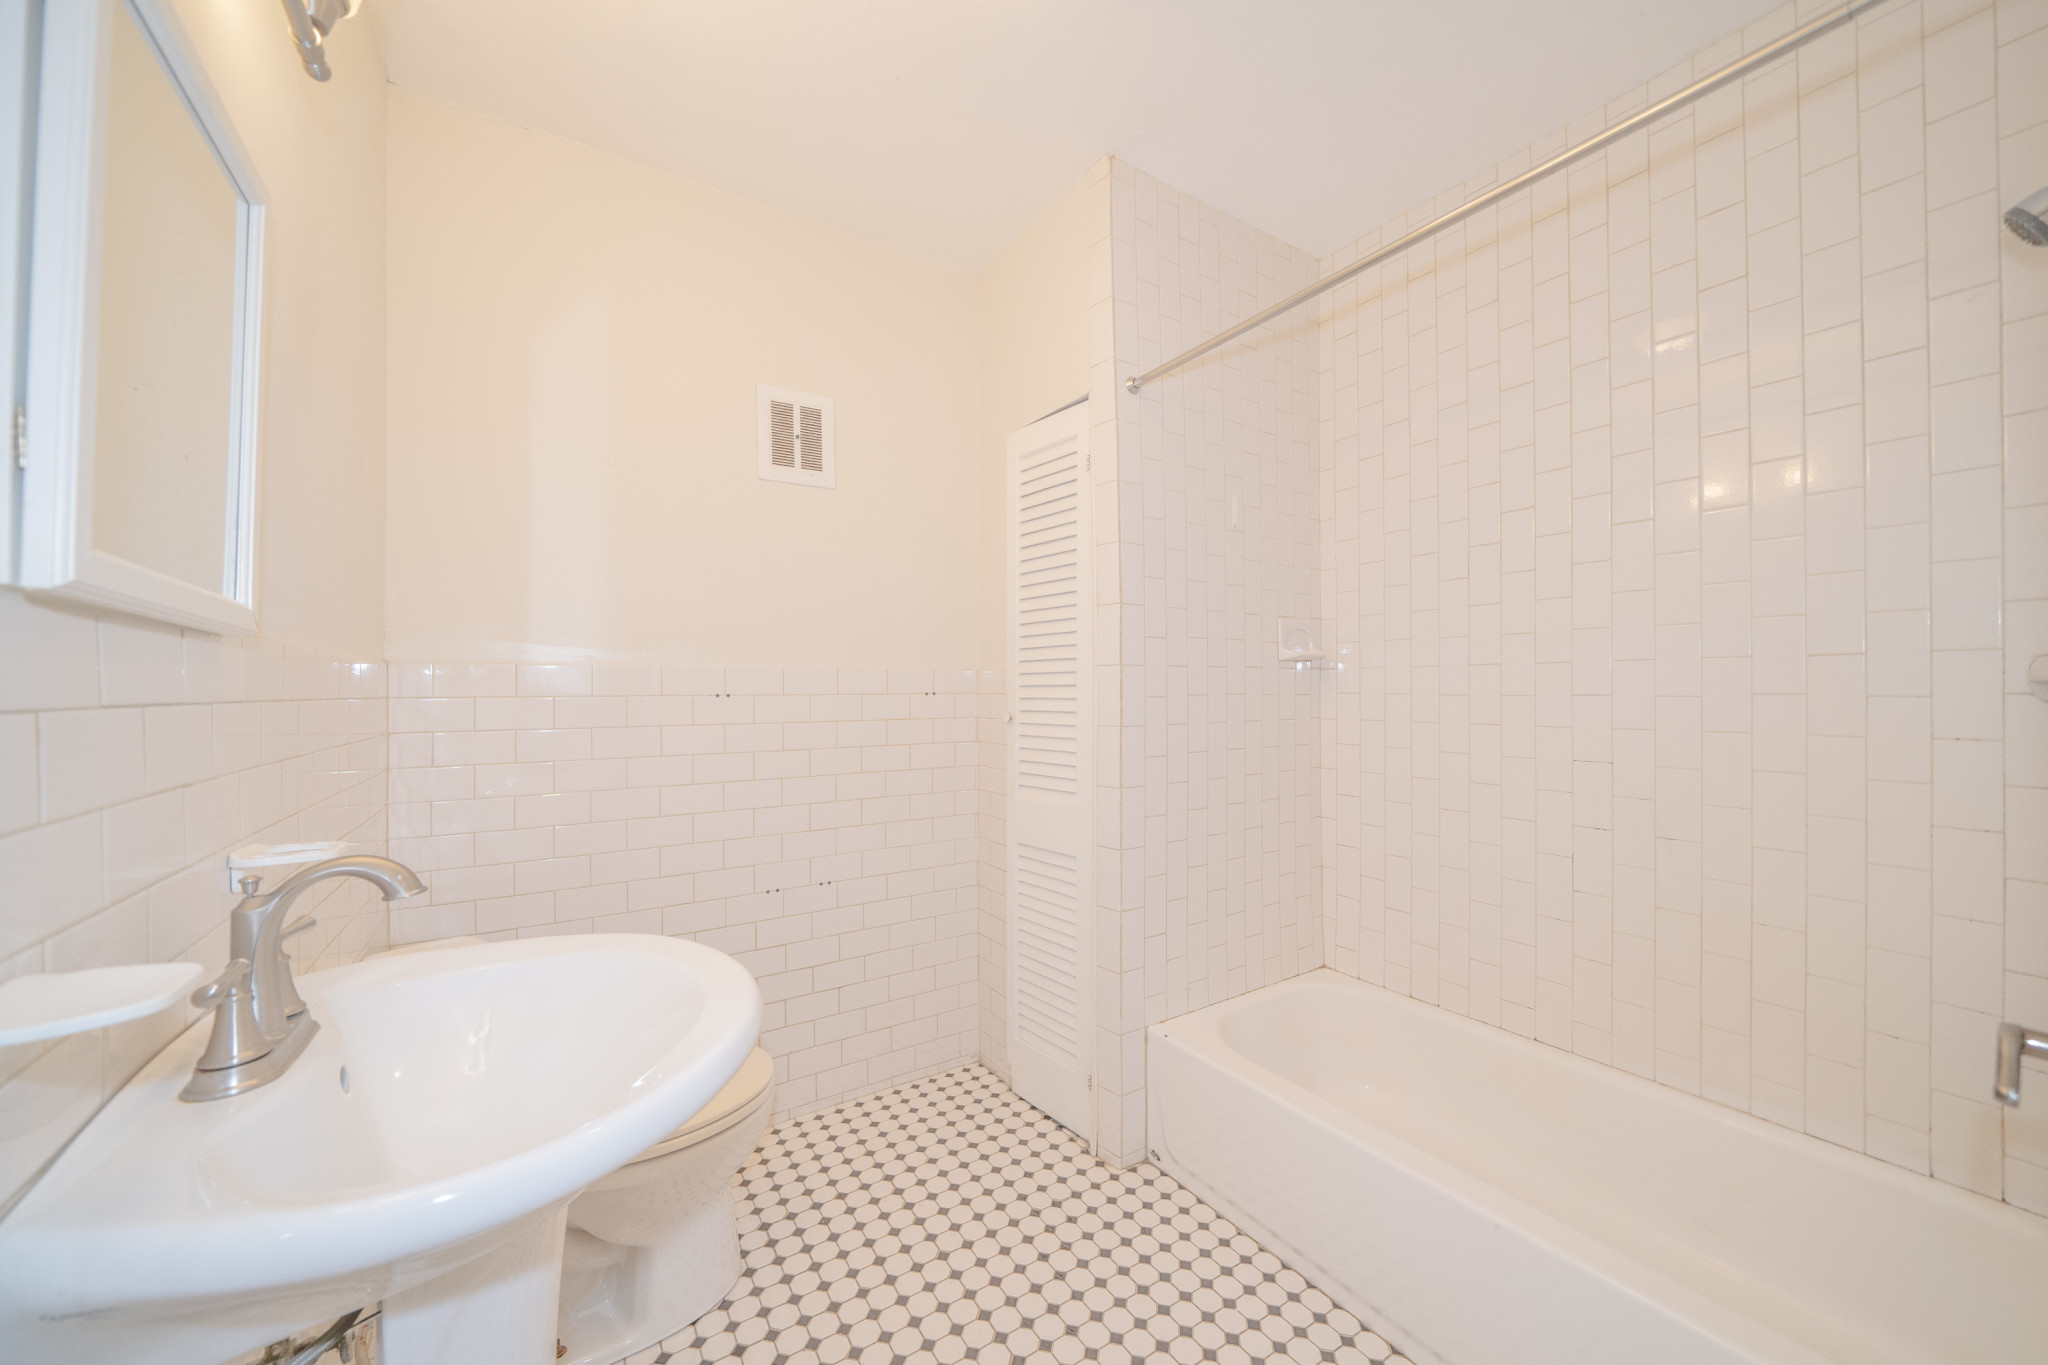 1 Bed, 1 Bath apartment in Brookline for $1,900